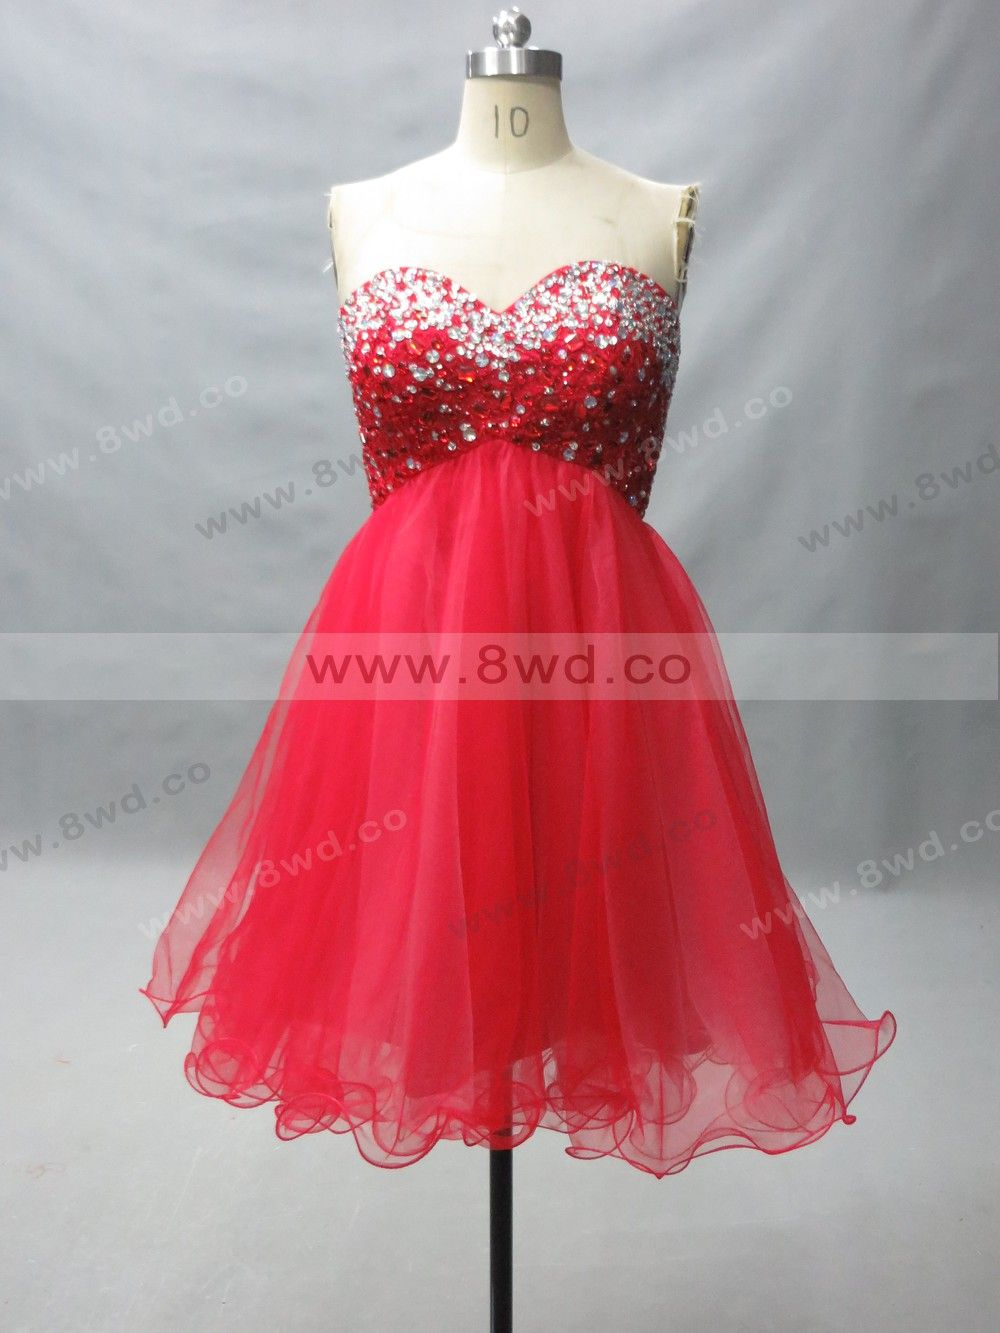 2015 Stunning Red Sweetheart Neckline Petite Organza Beading Crystal Short Cocktail Dress